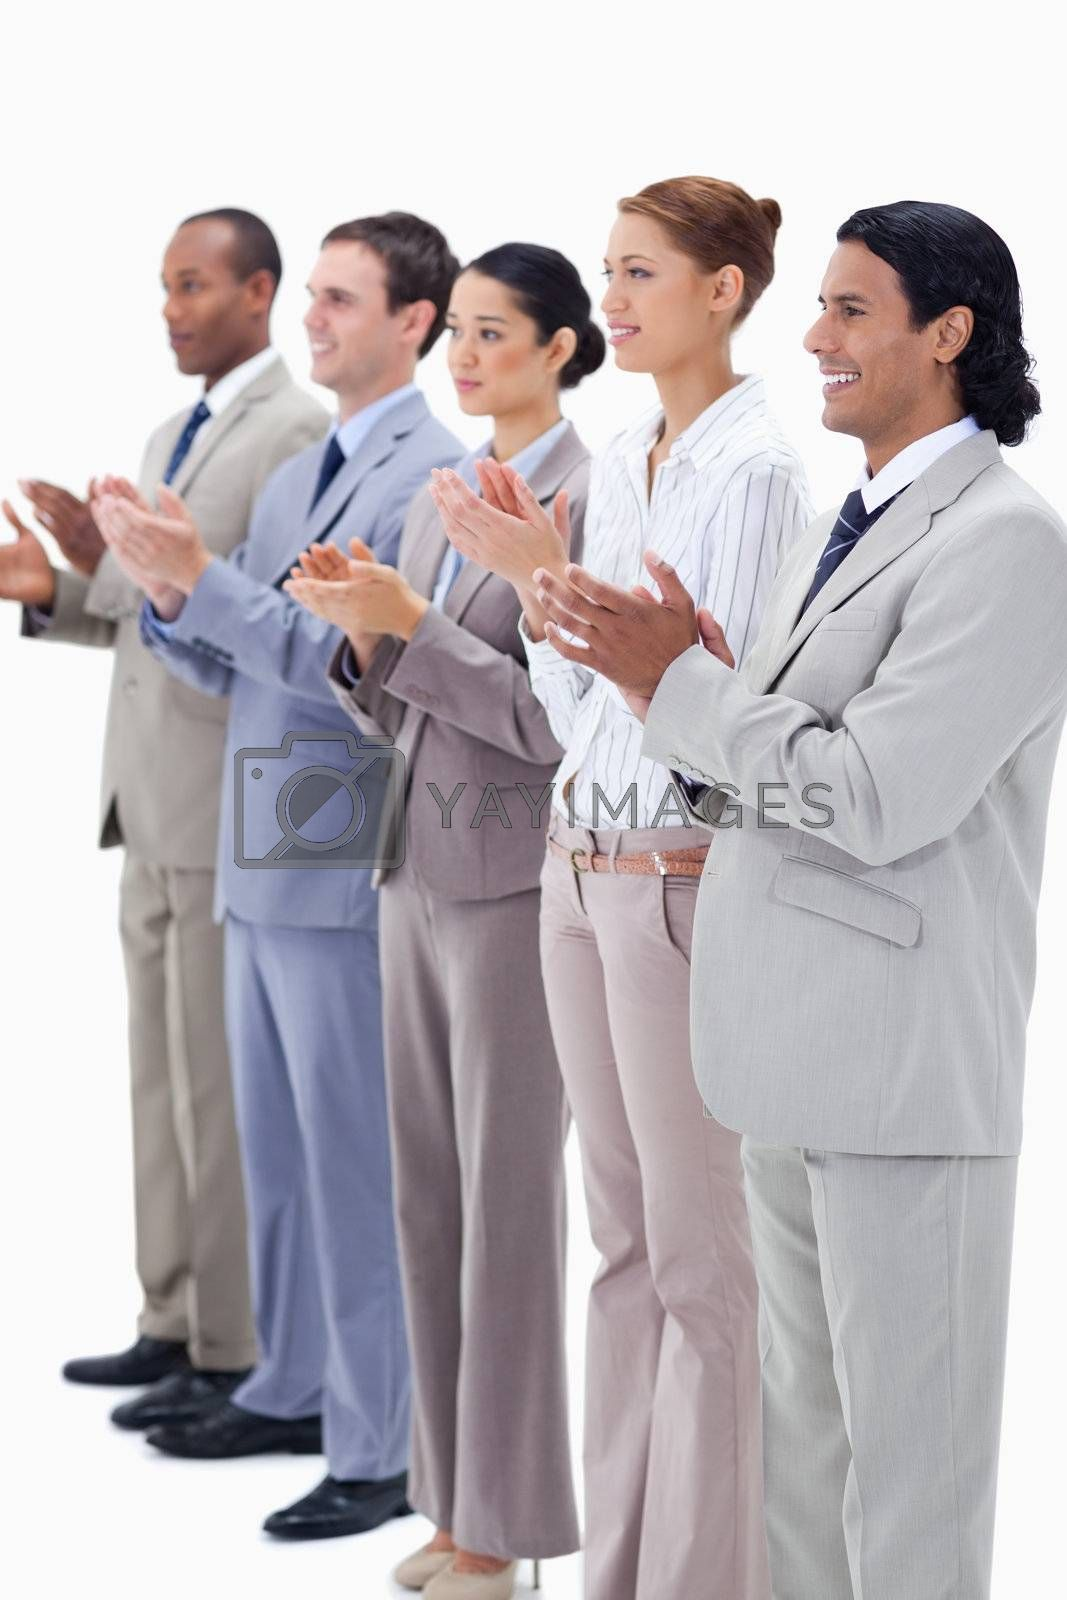 People dressed in suits smiling and applauding while looking towards the left side against white background